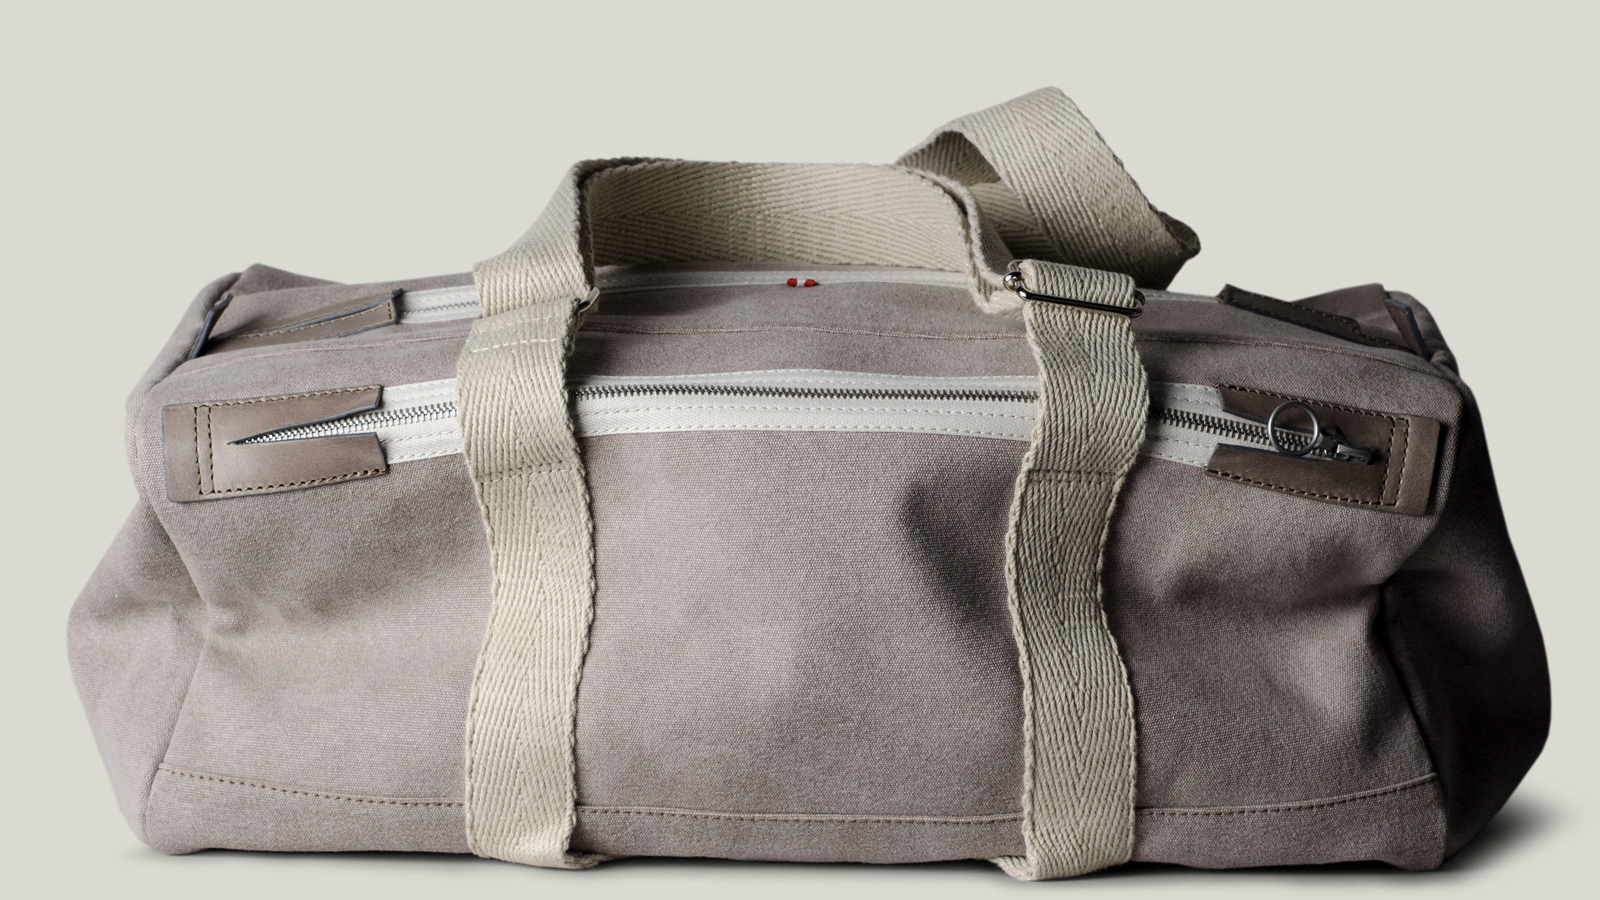 Hardgraft Game Gym Bag Off Grey | best mens gym duffle bag